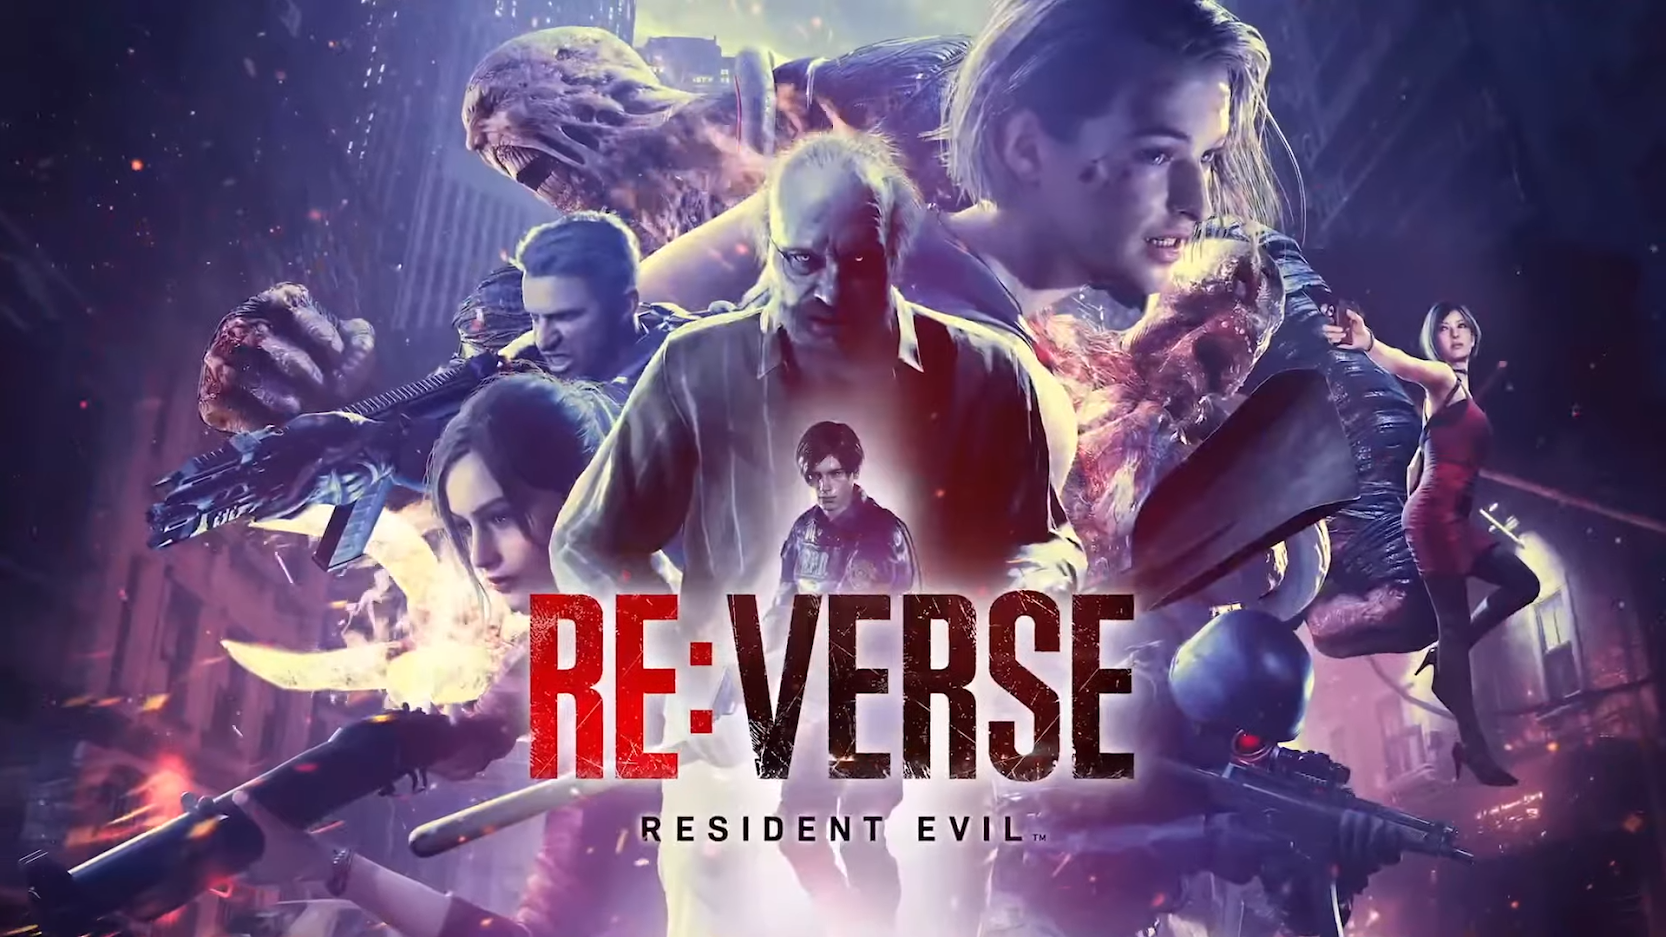 Resident Evil Multiplayer Spinoff REVerse has been delayed